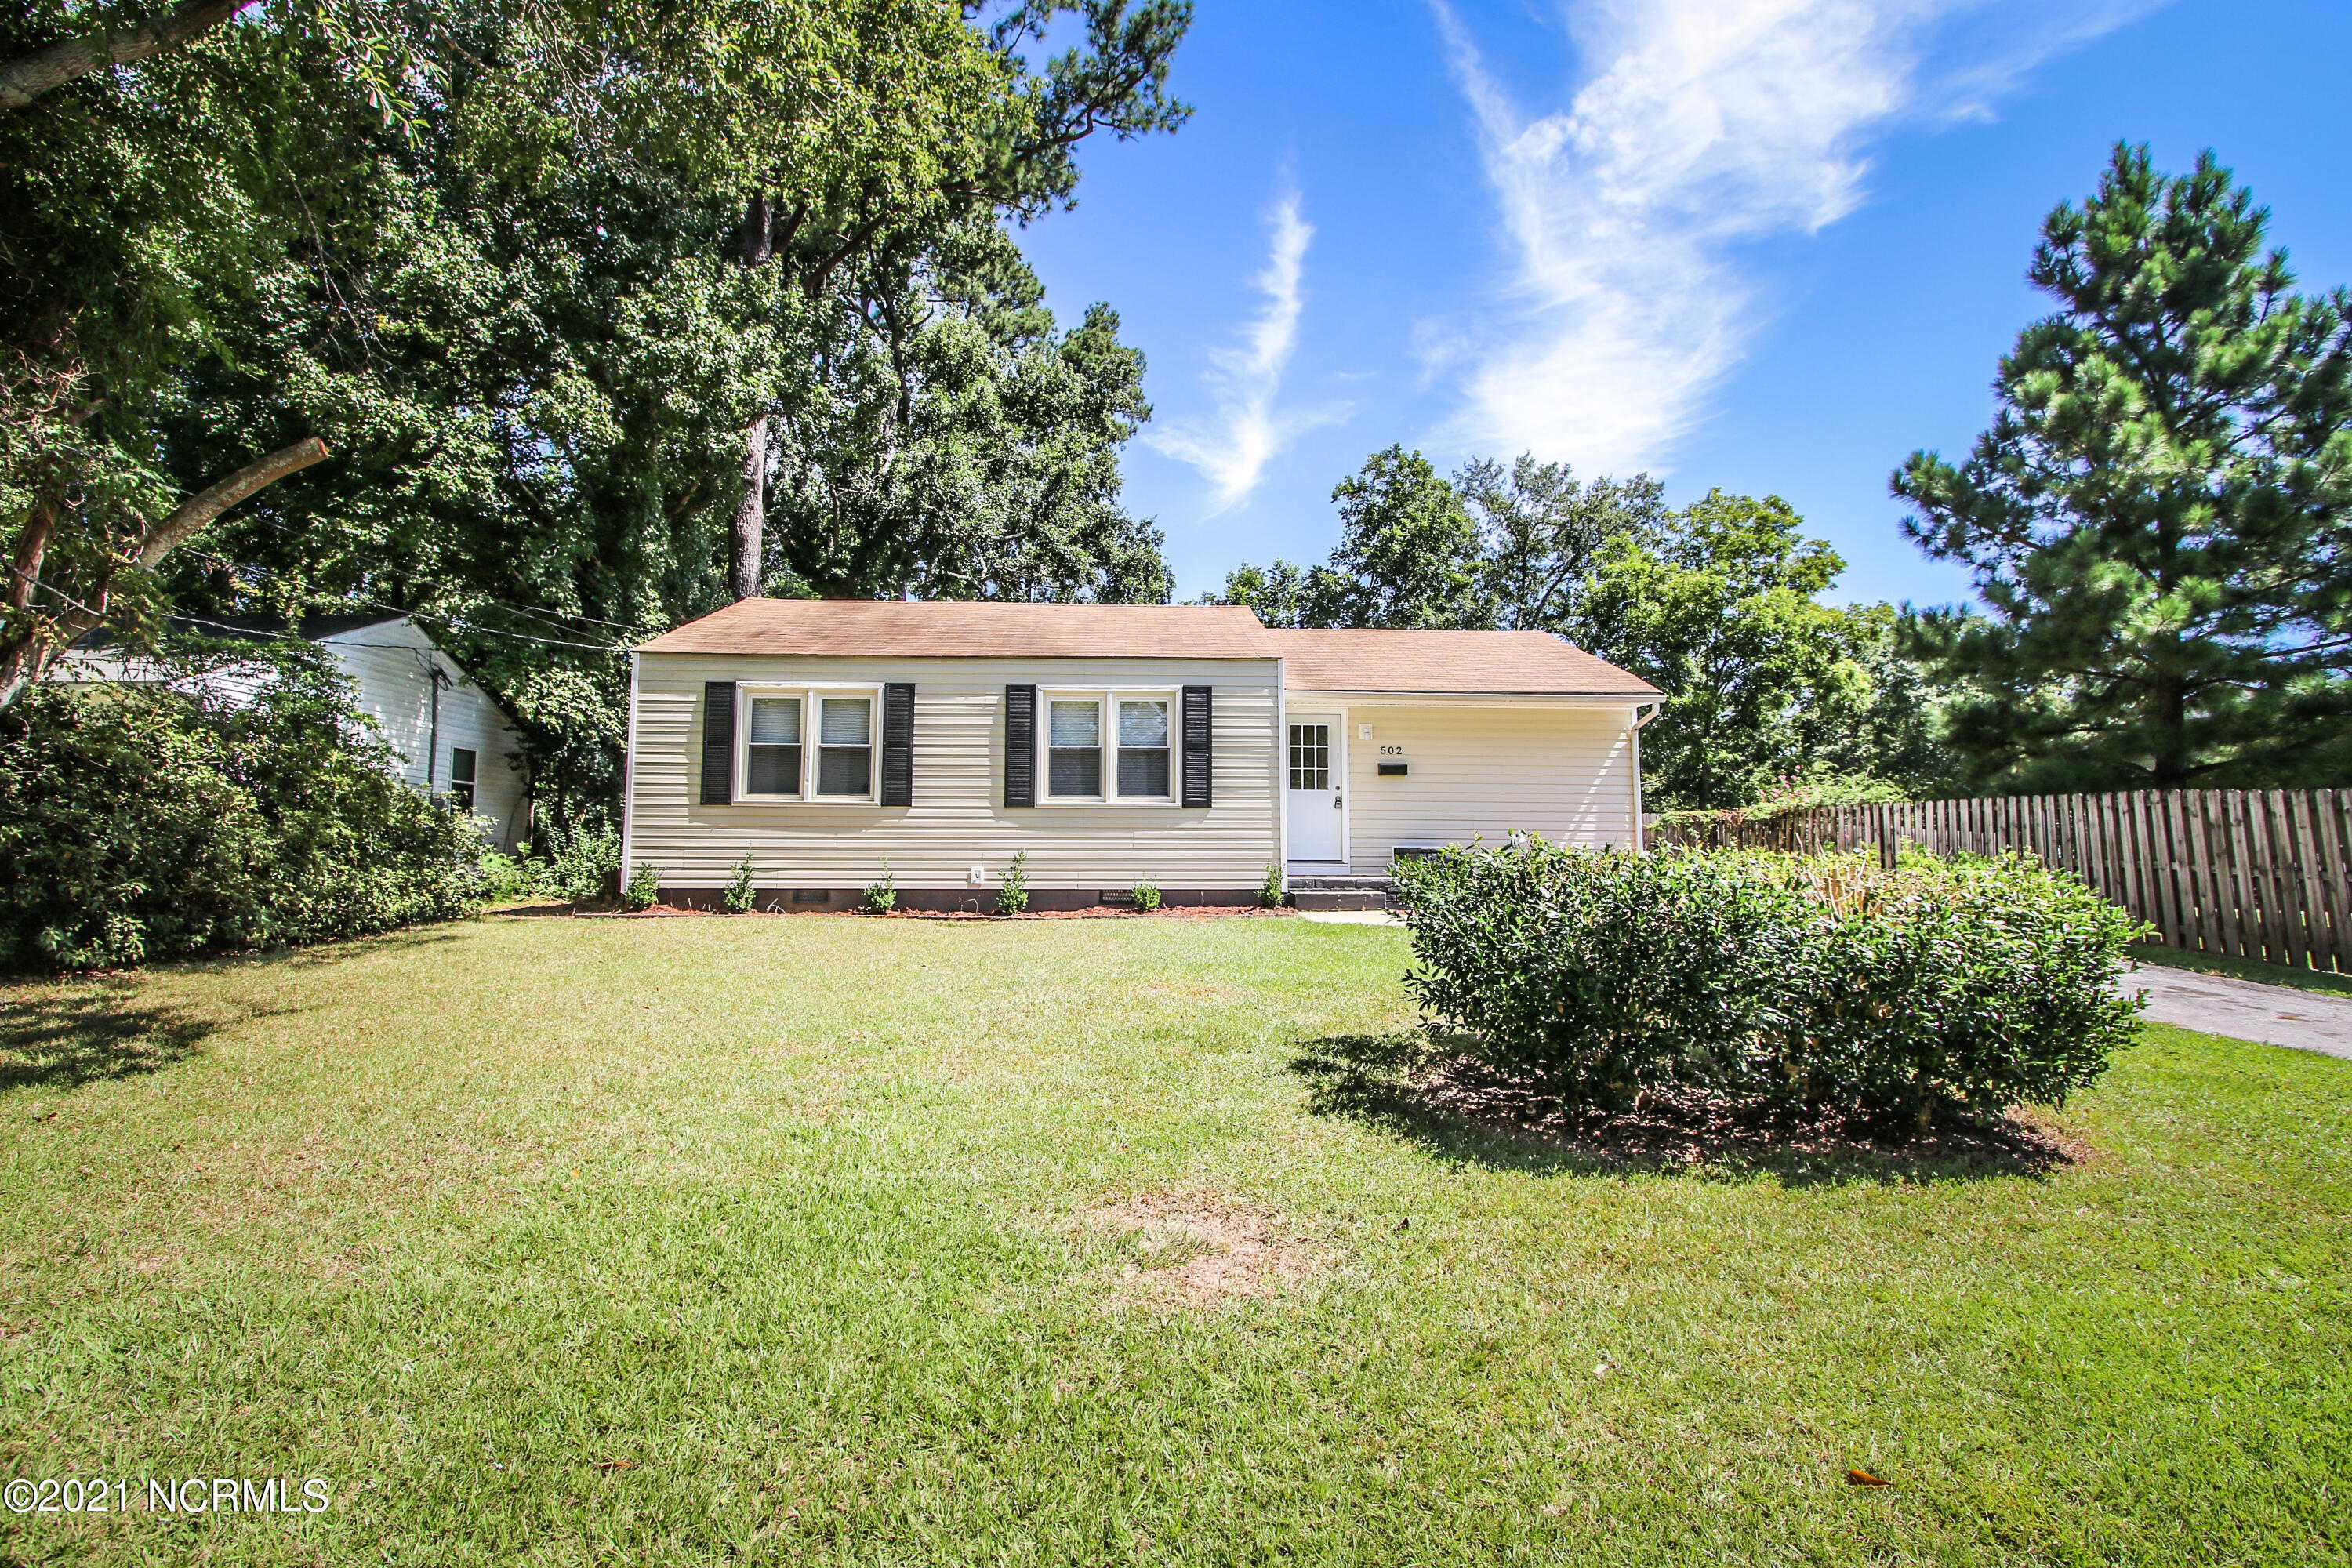 Welcome Home to 502 Oak Lane, this 3 bedroom 2 bathroom home located in the heart of town has so much to offer! As you enter the home you will notice real hardwood floors in the main living areas. The kitchen is spacious and off the kitchen is a laundry room. The laundry room leads out to the backyard. In the backyard you will find the AMAZING back deck, perfect for entertaining, a fully fenced in backyard. AND the detached garage which is completely wired and has so many possibilities, from a home gym, to a workshop and everything in-between! Back inside you will find two secondary bedrooms and a bathroom. Finish off the home with the master bedroom and bathroom. This home is sure to please! Close to all area shopping and dining. Close to all area bases! Hurry and make this home yours today.